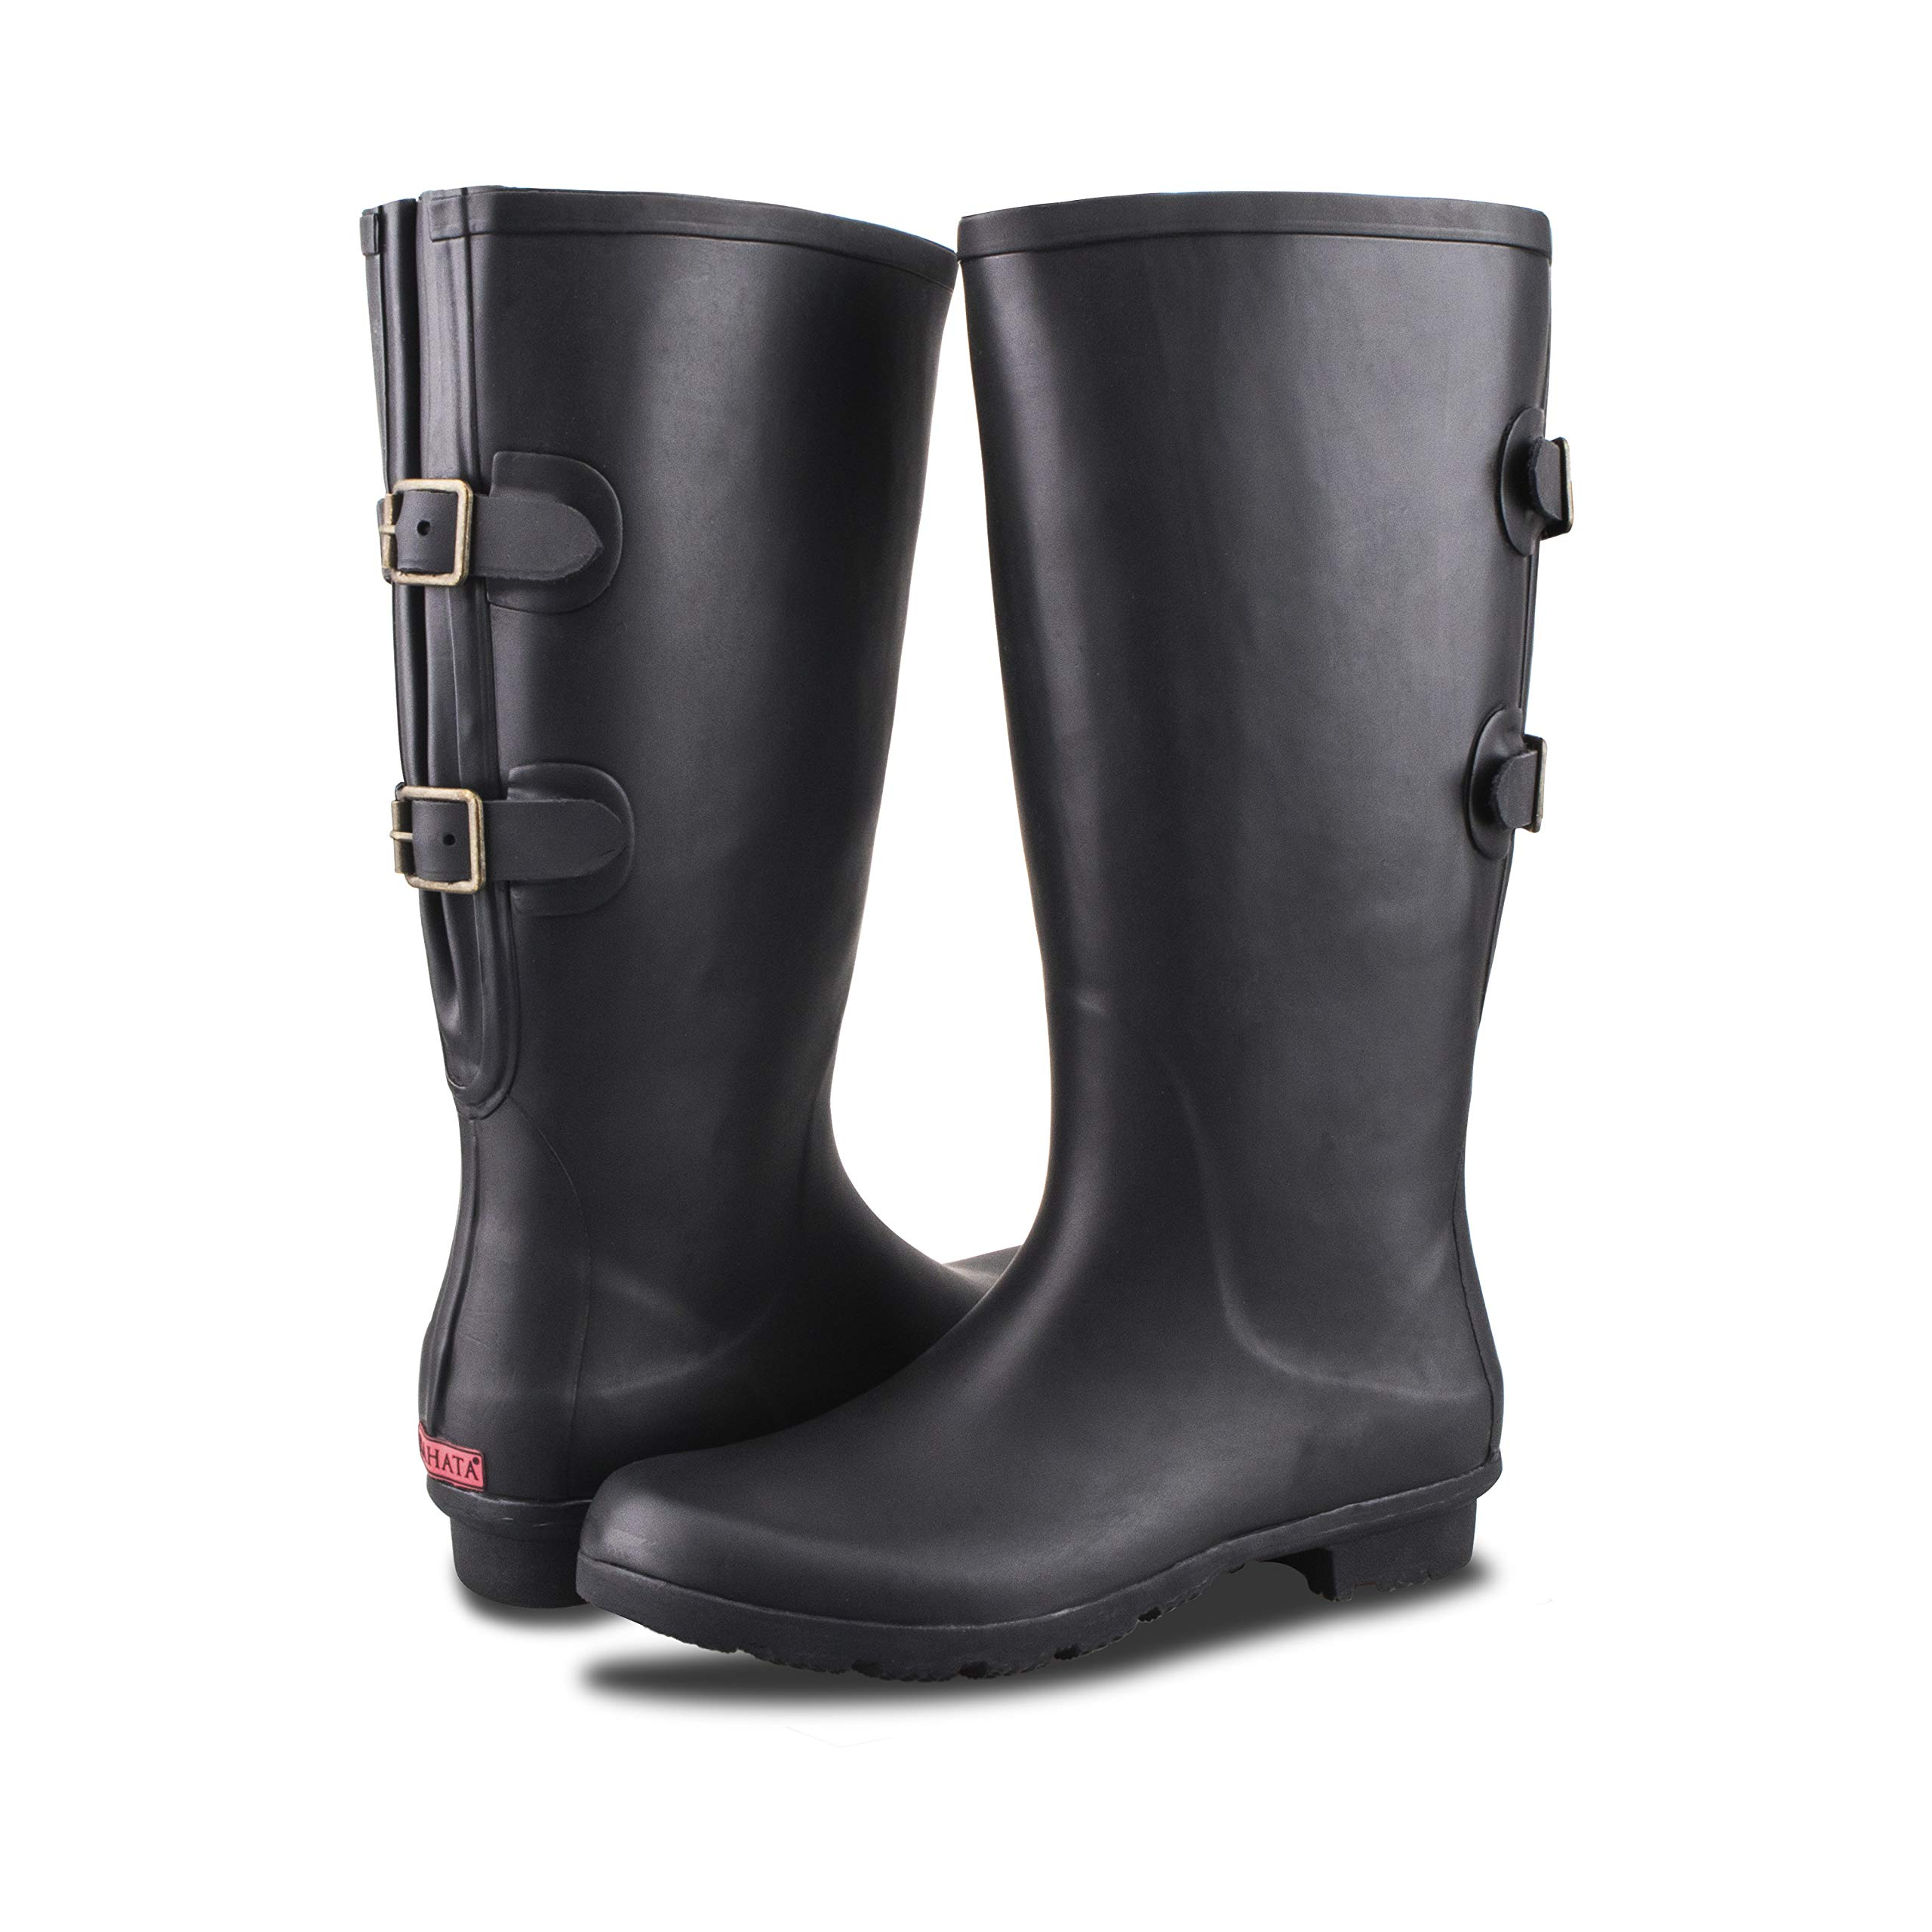 RAHATA Rubber Wide Calf Rain Boot for Women with Two Adjustable Buckles (9 B(M) Women, Black) by RAHATA